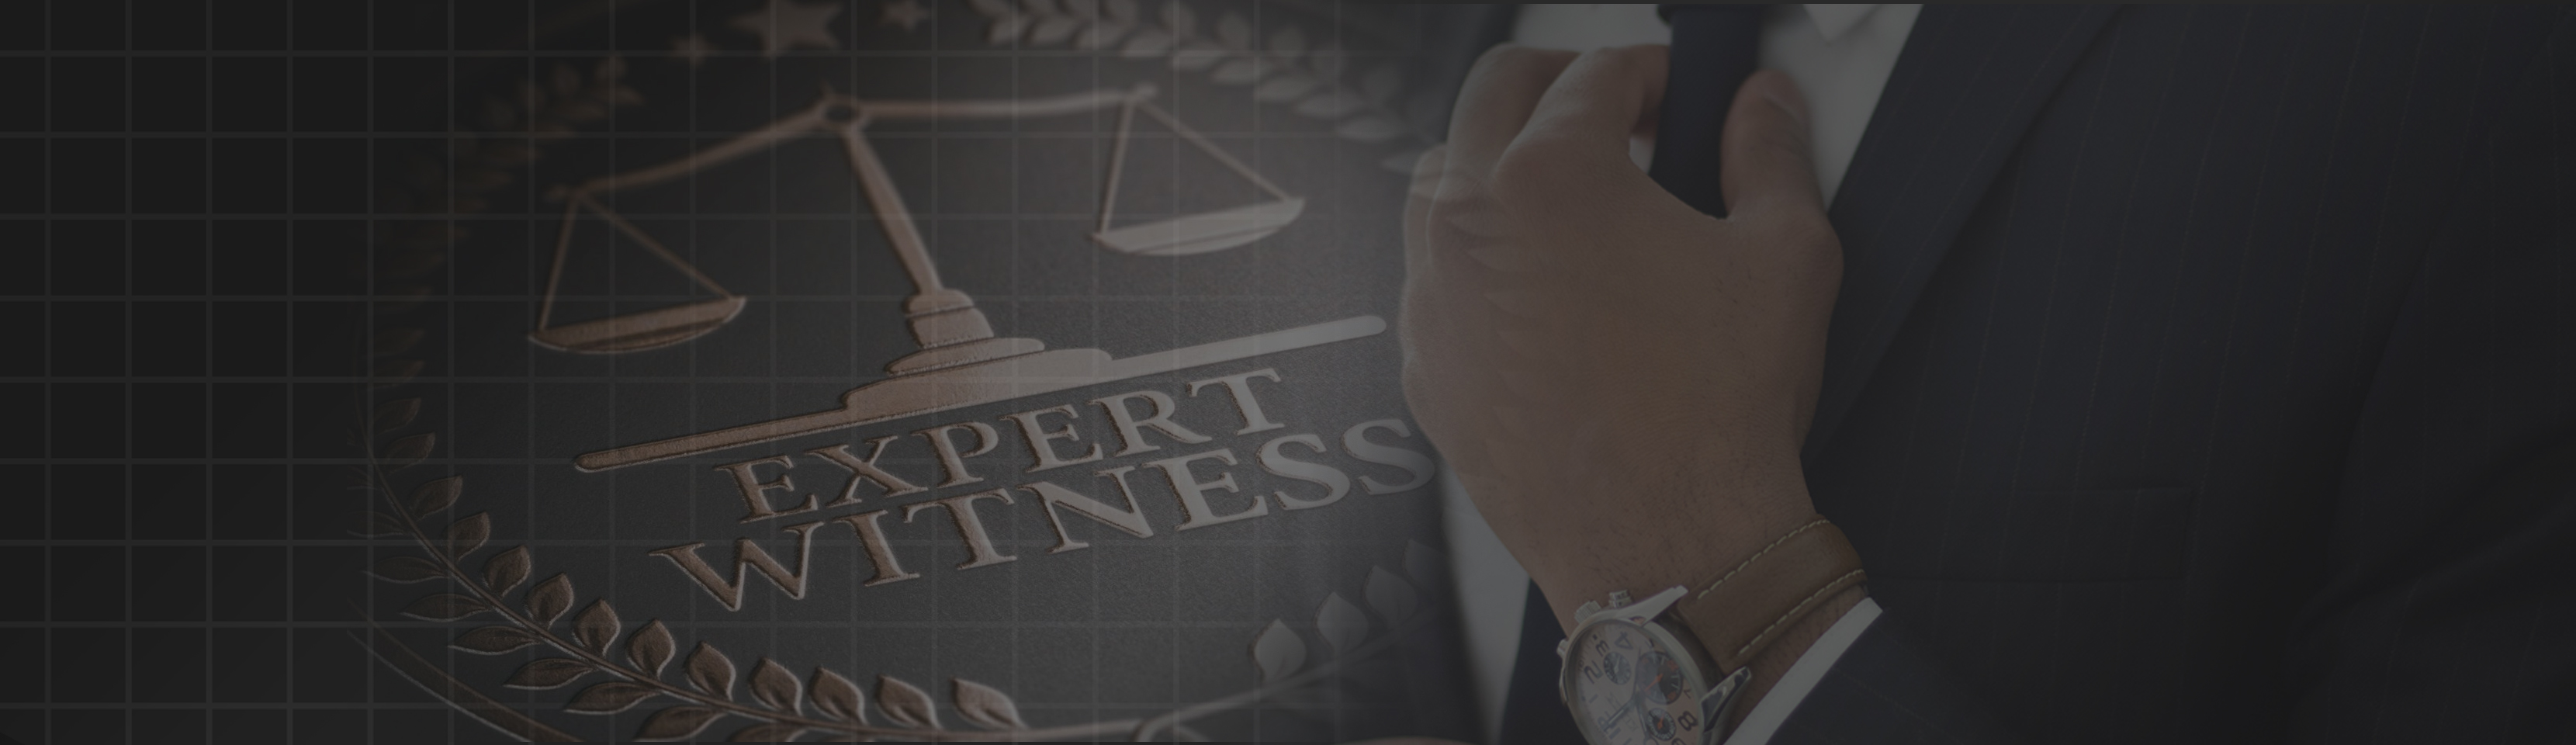 Maryland Accepts Daubert as Controlling Law for Admitting ExpertTestimony